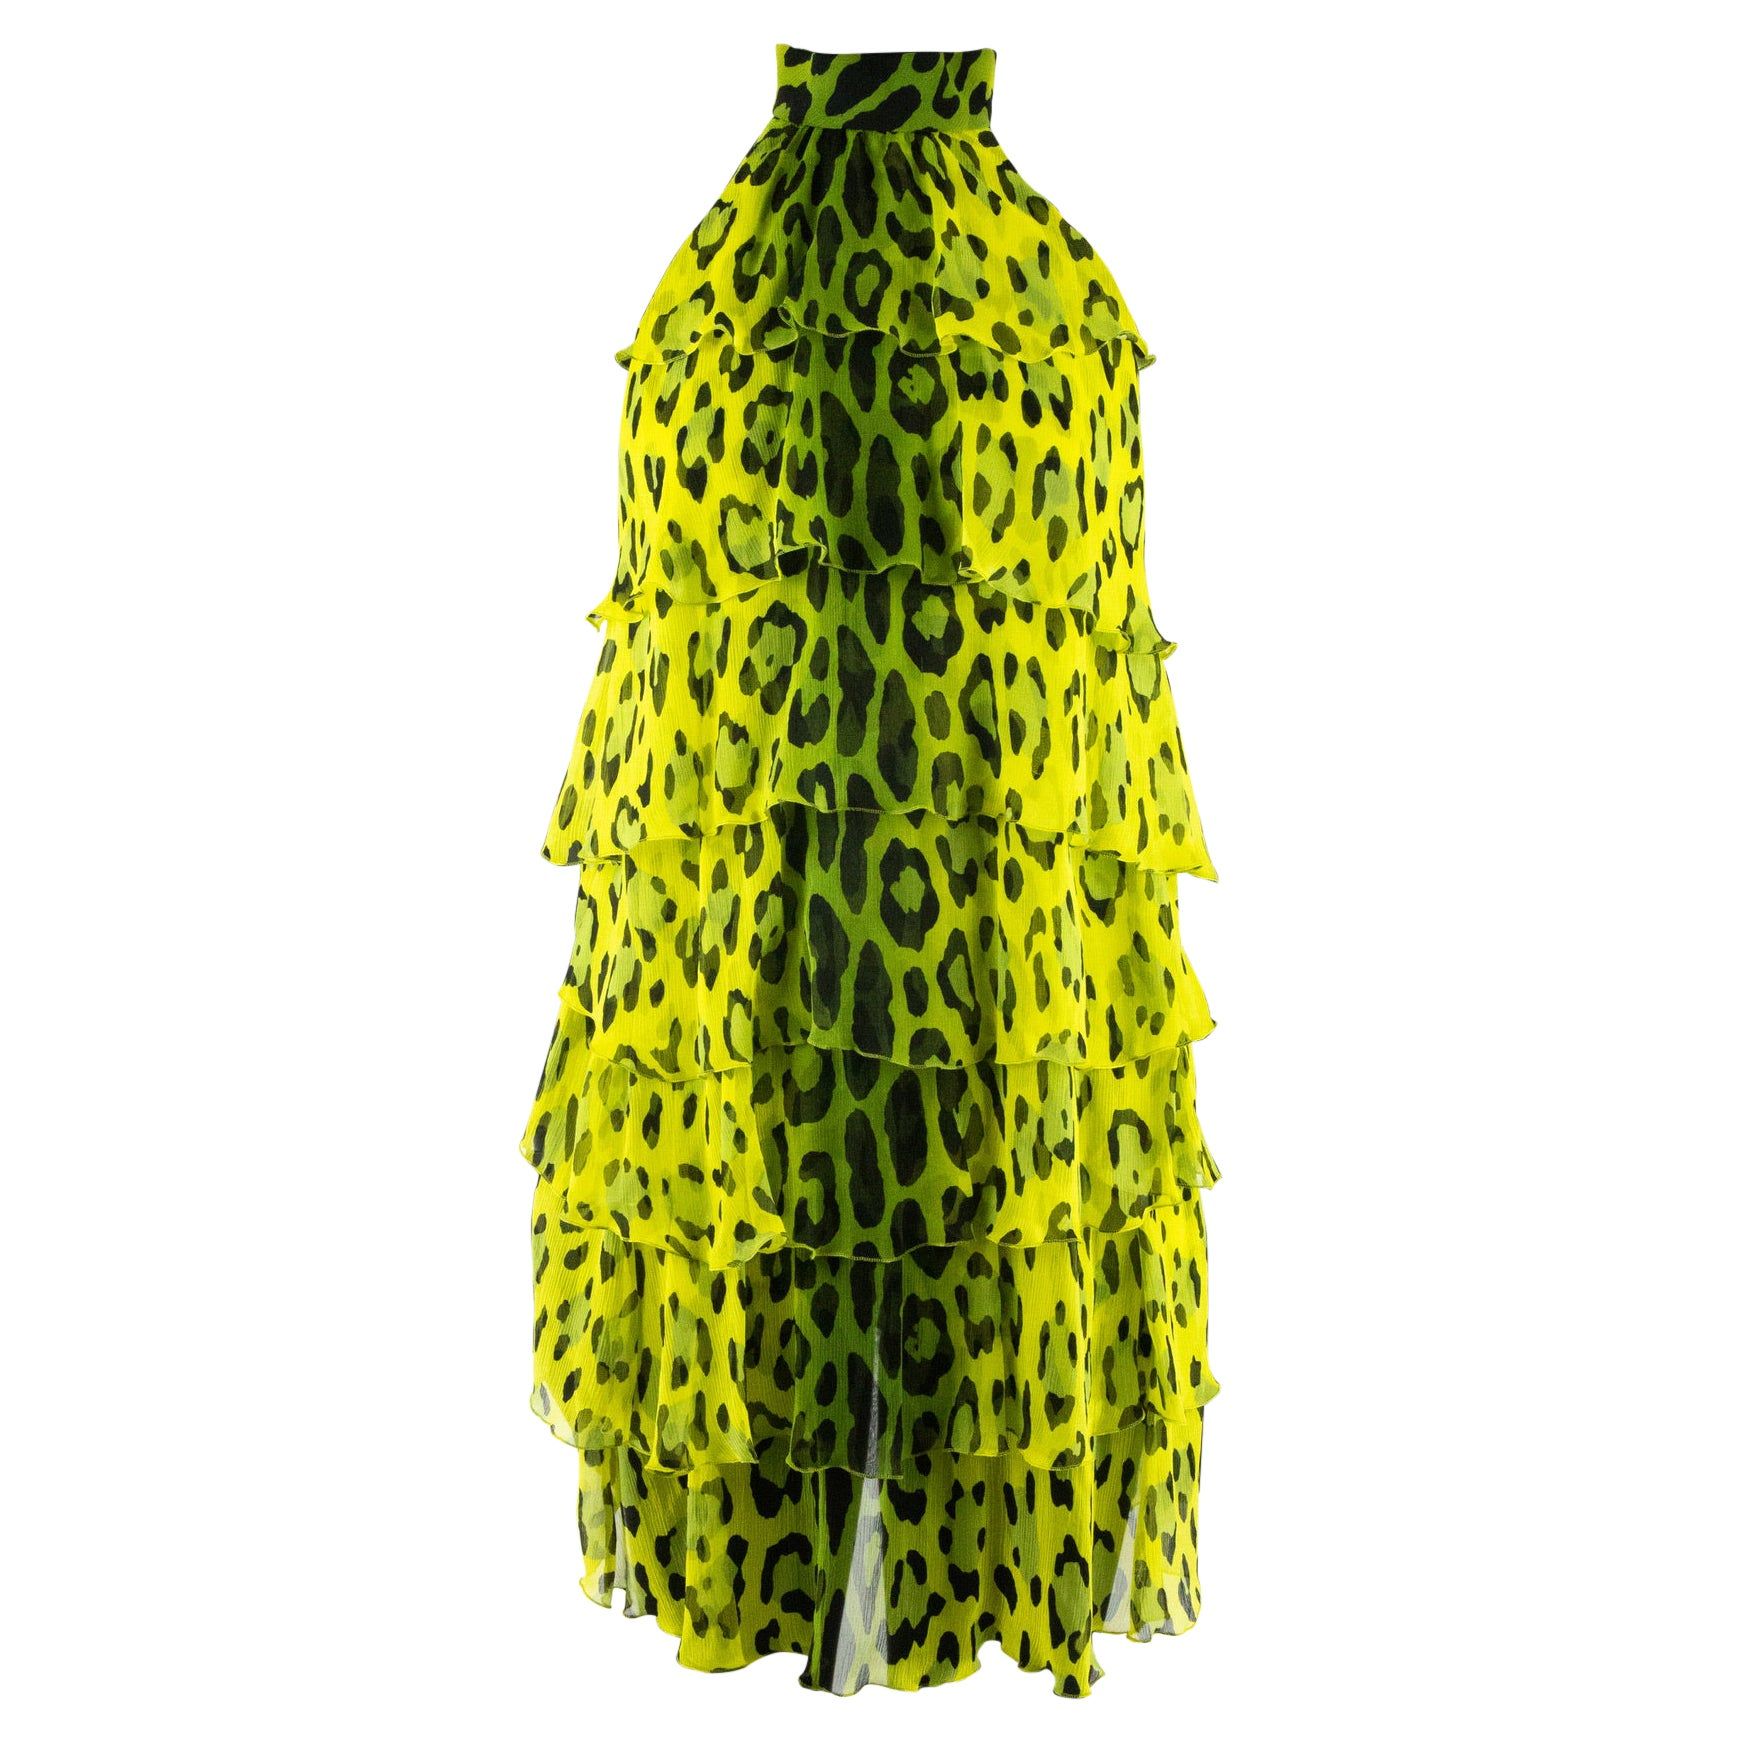 Tom Ford Yellow and Green Leopard Print Dress